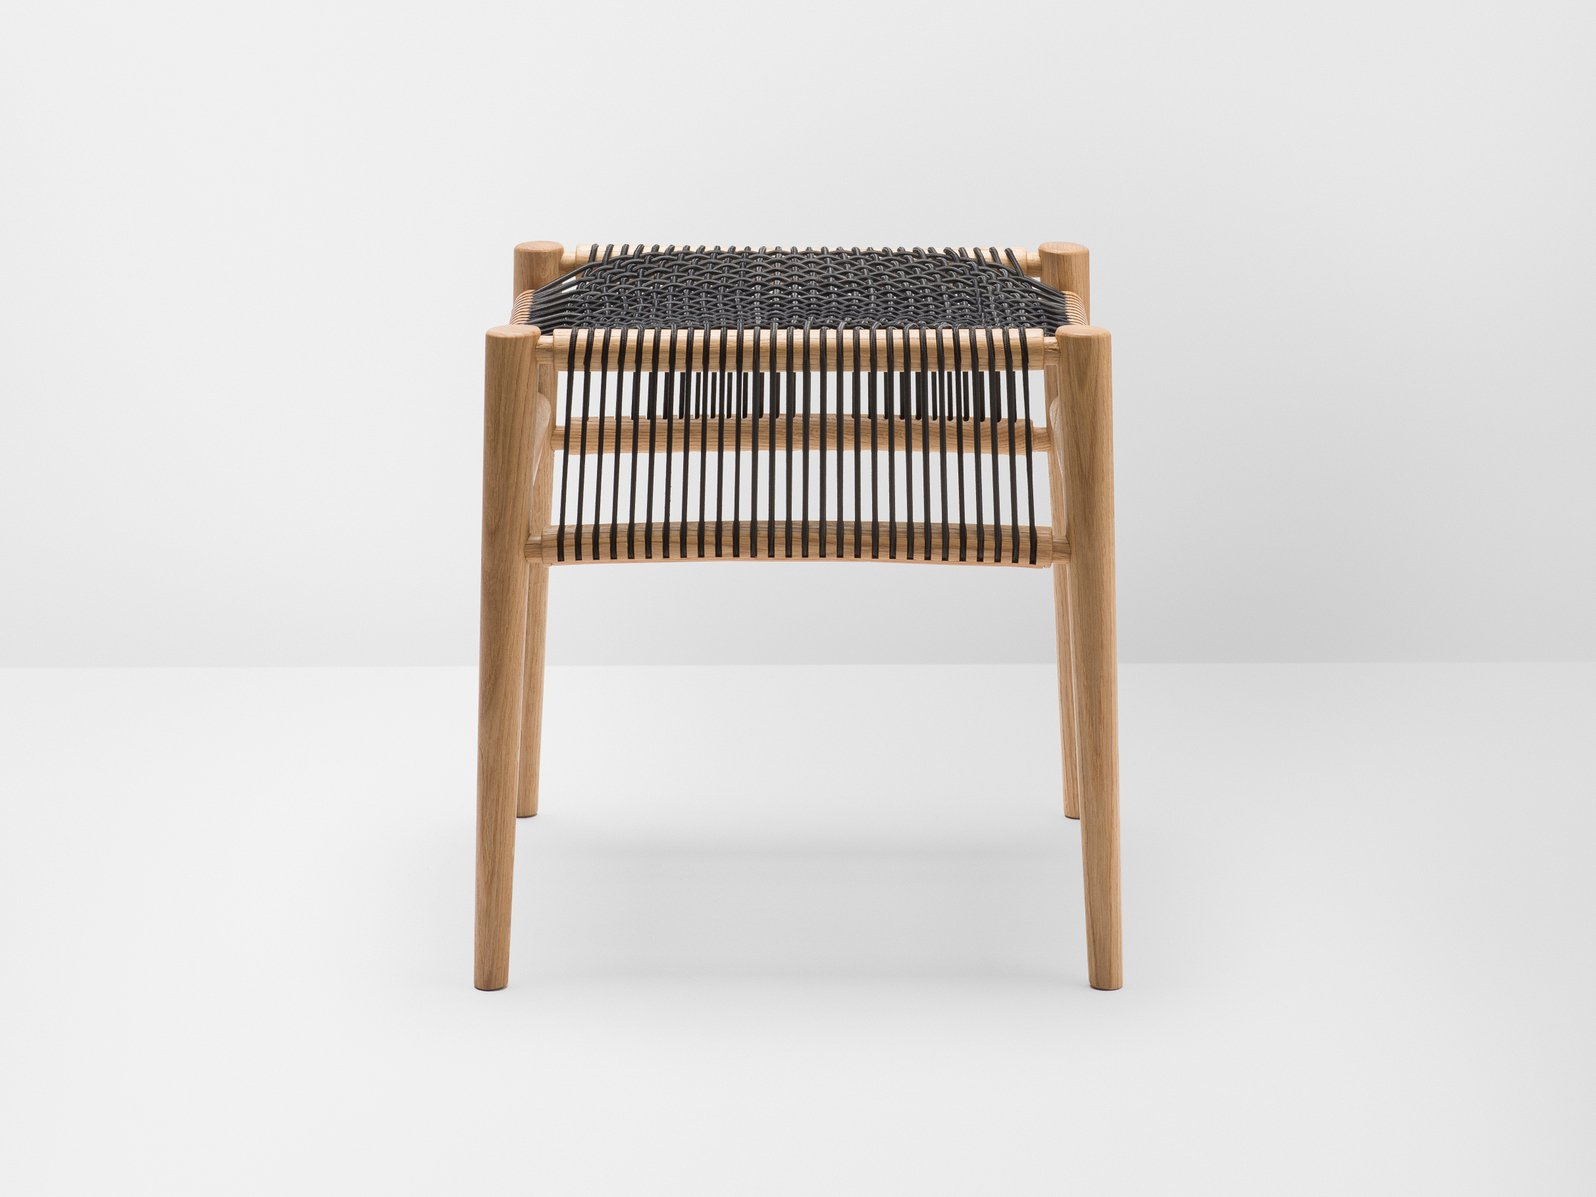 Loom oak stool loom collection by h furniture design hierve for H furniture collection loom